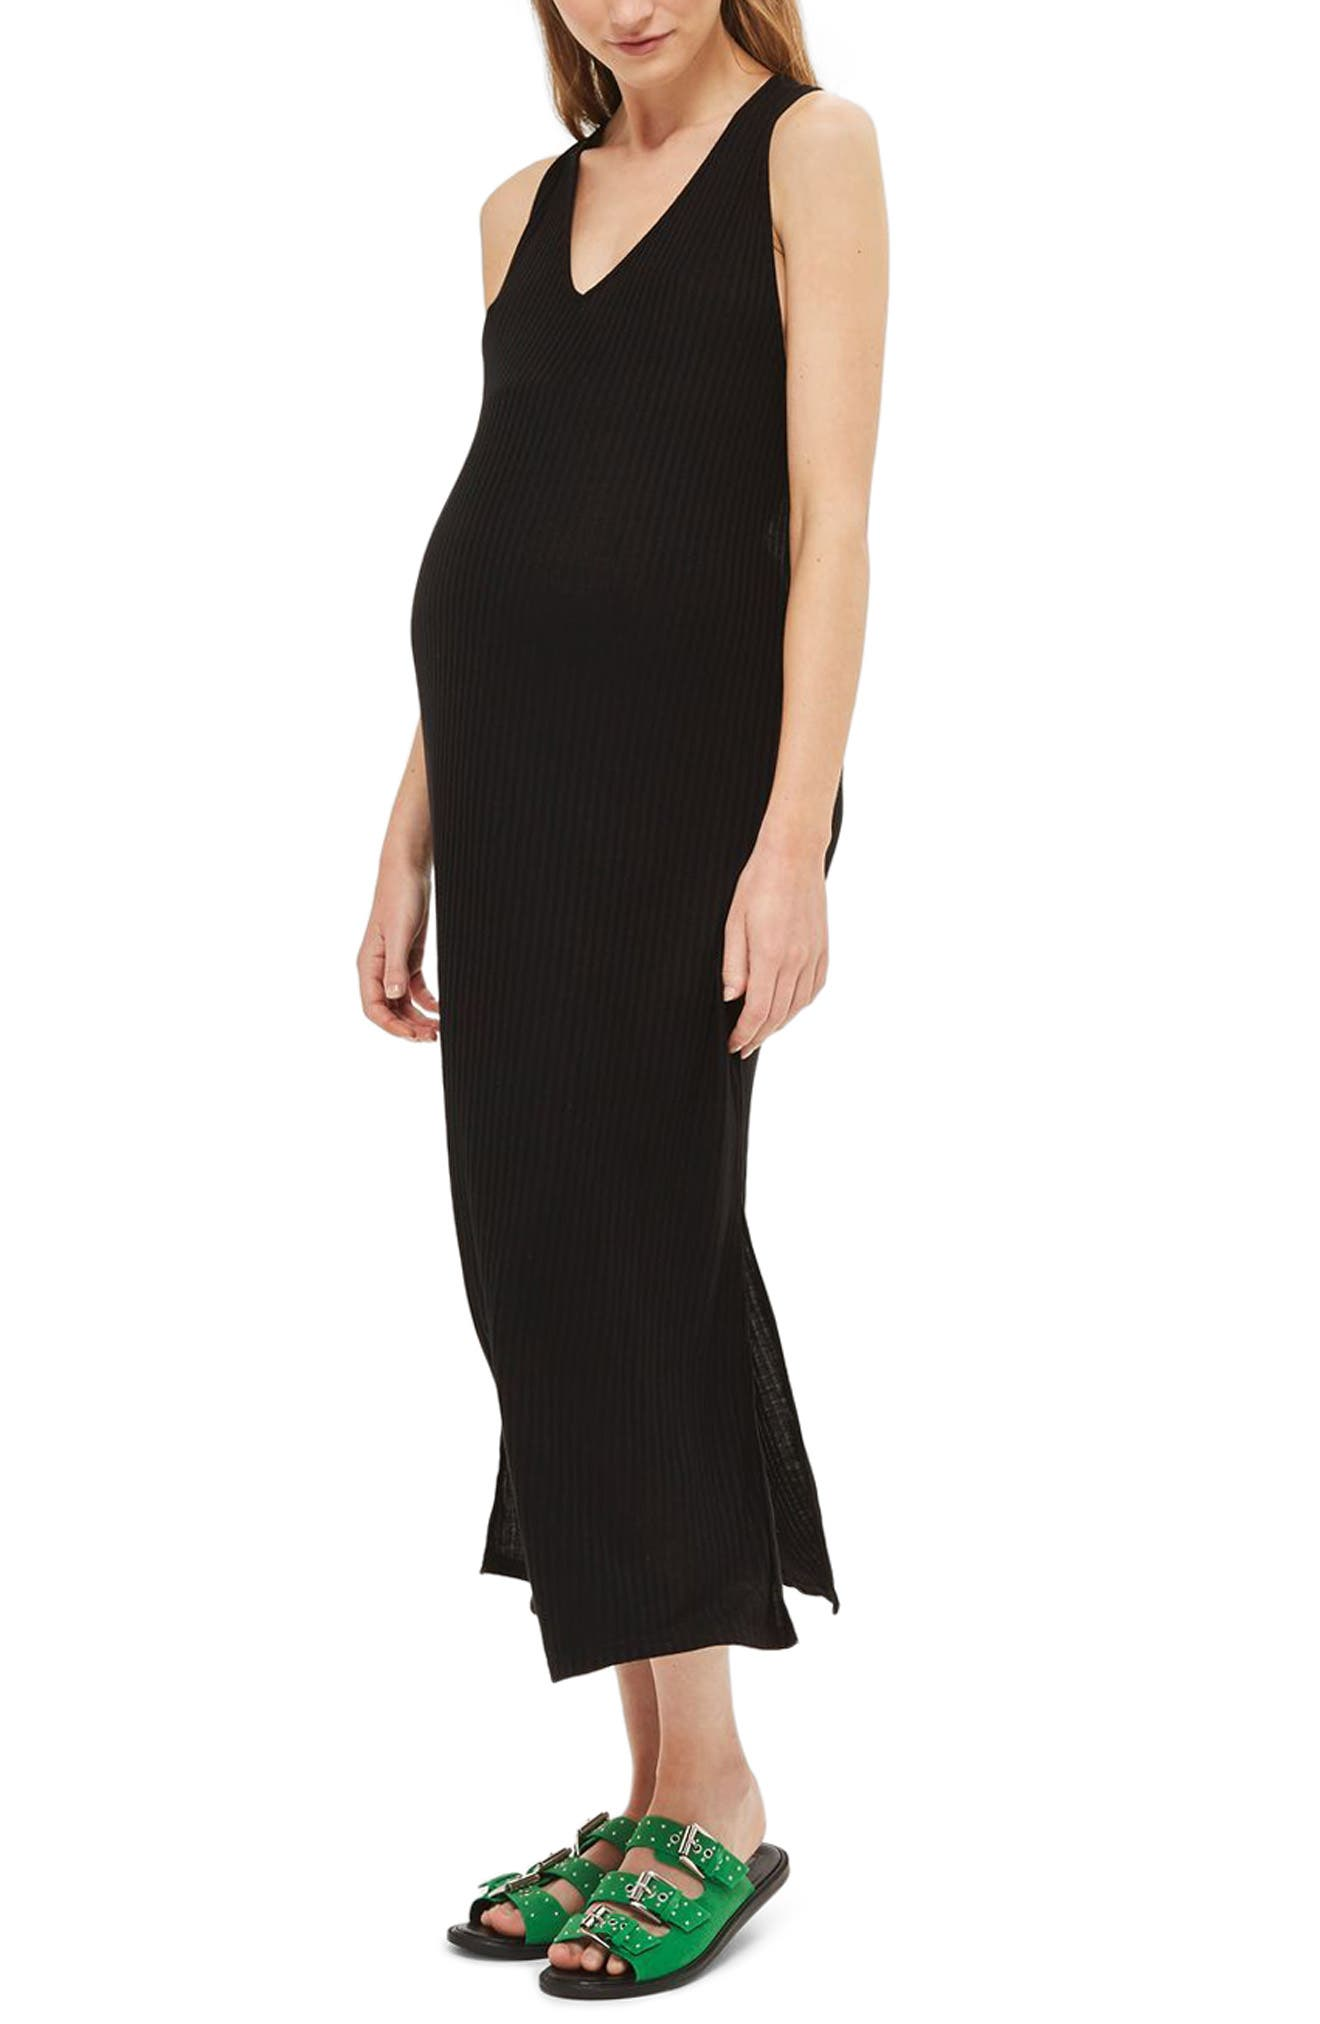 Topshop Twist Open Back Maternity Dress